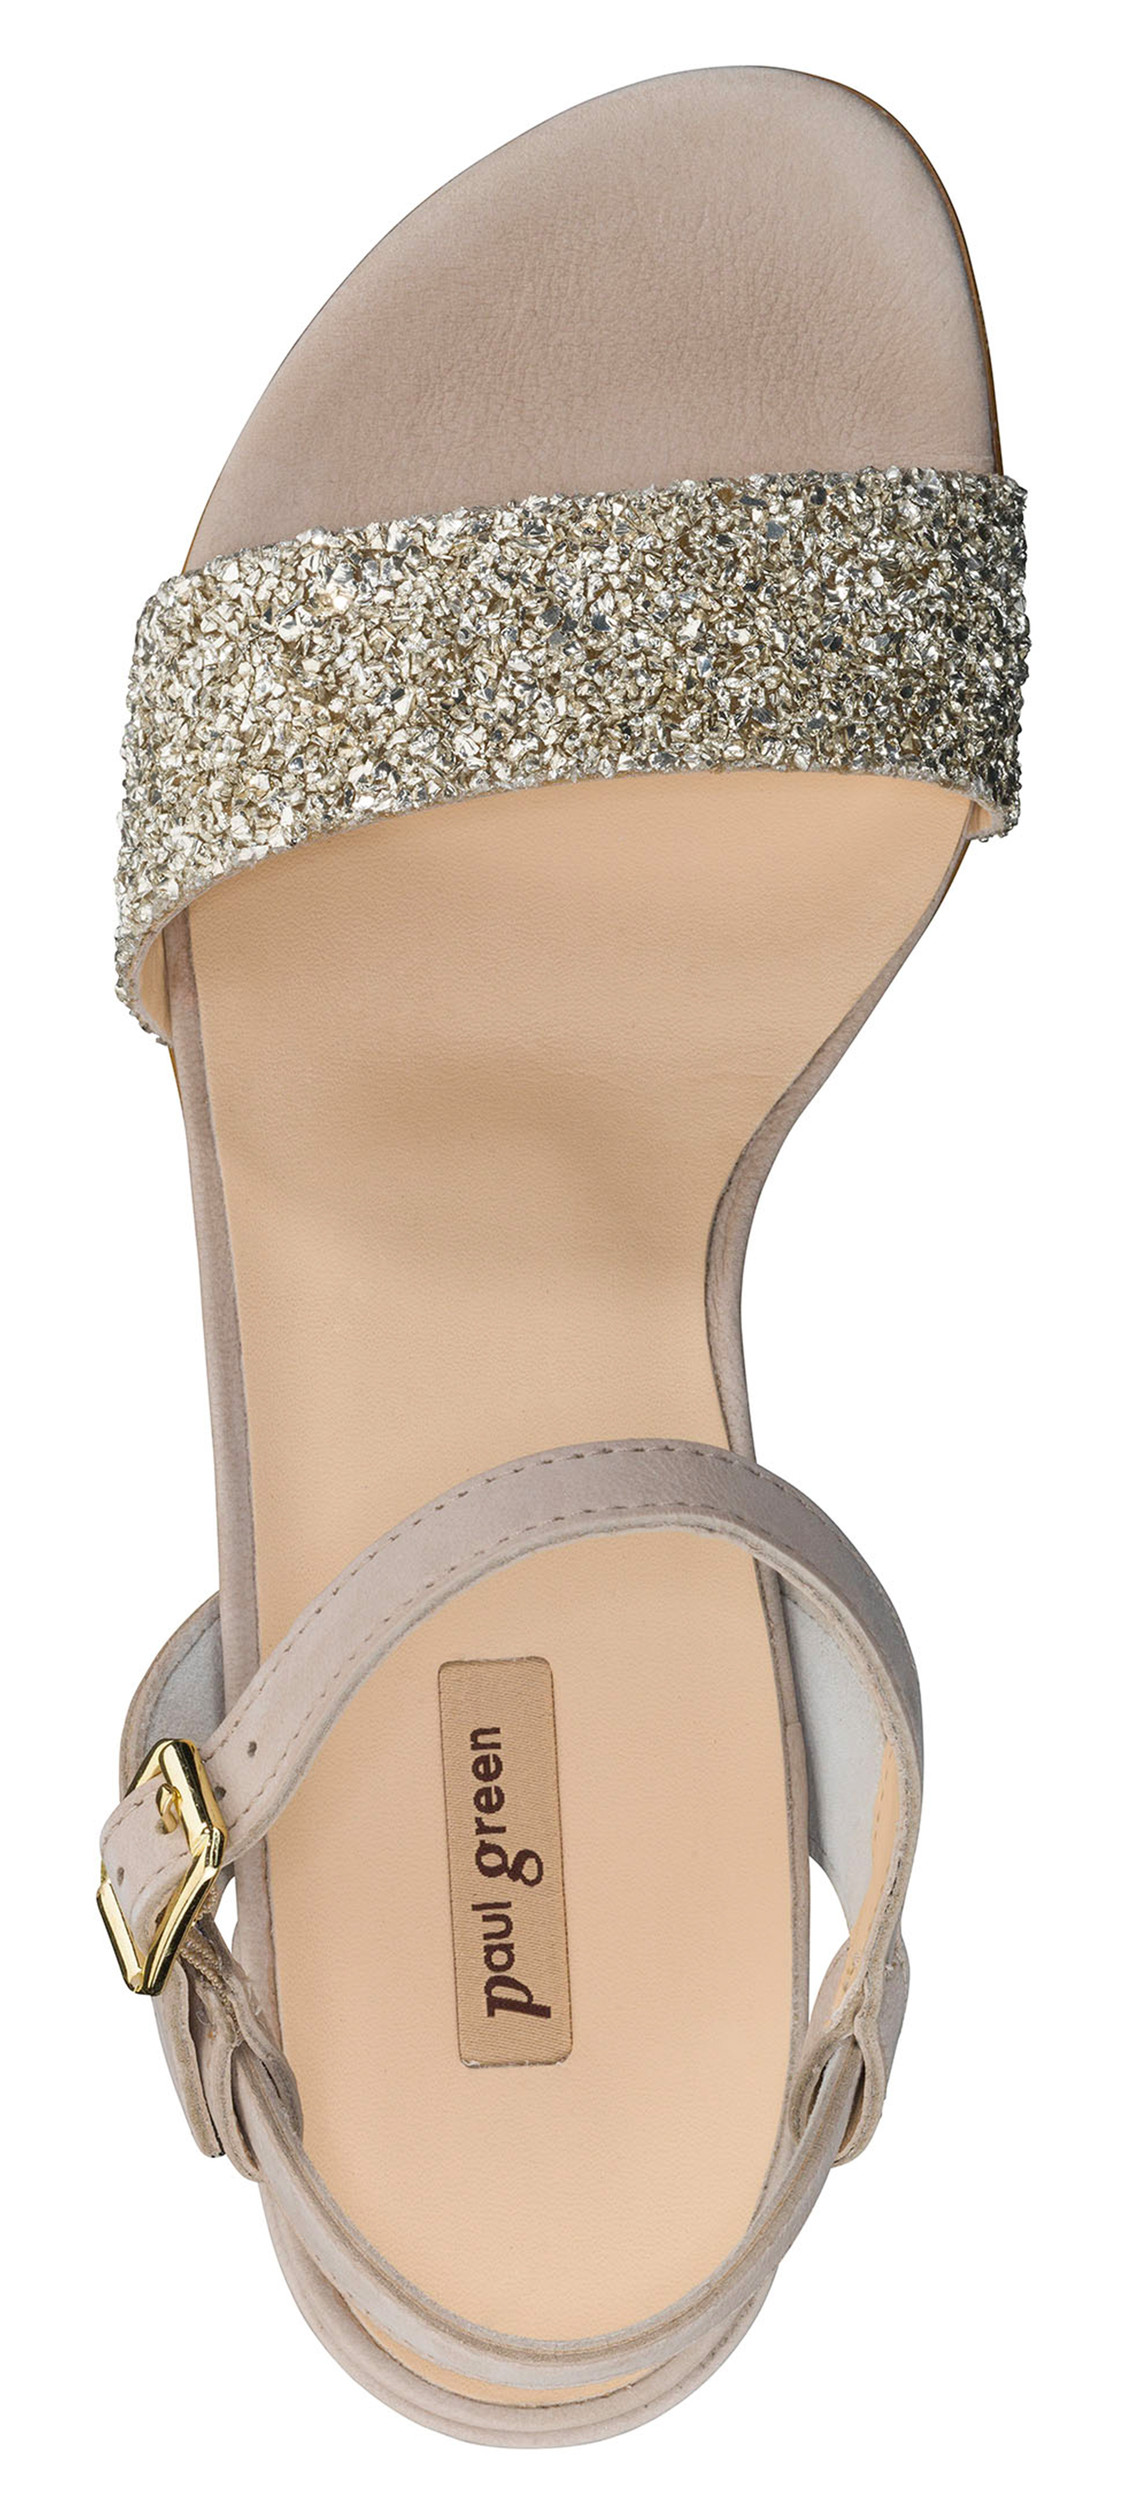 separation shoes fbf0e 0aaba Beige Sandals with Glitter - Paul Green